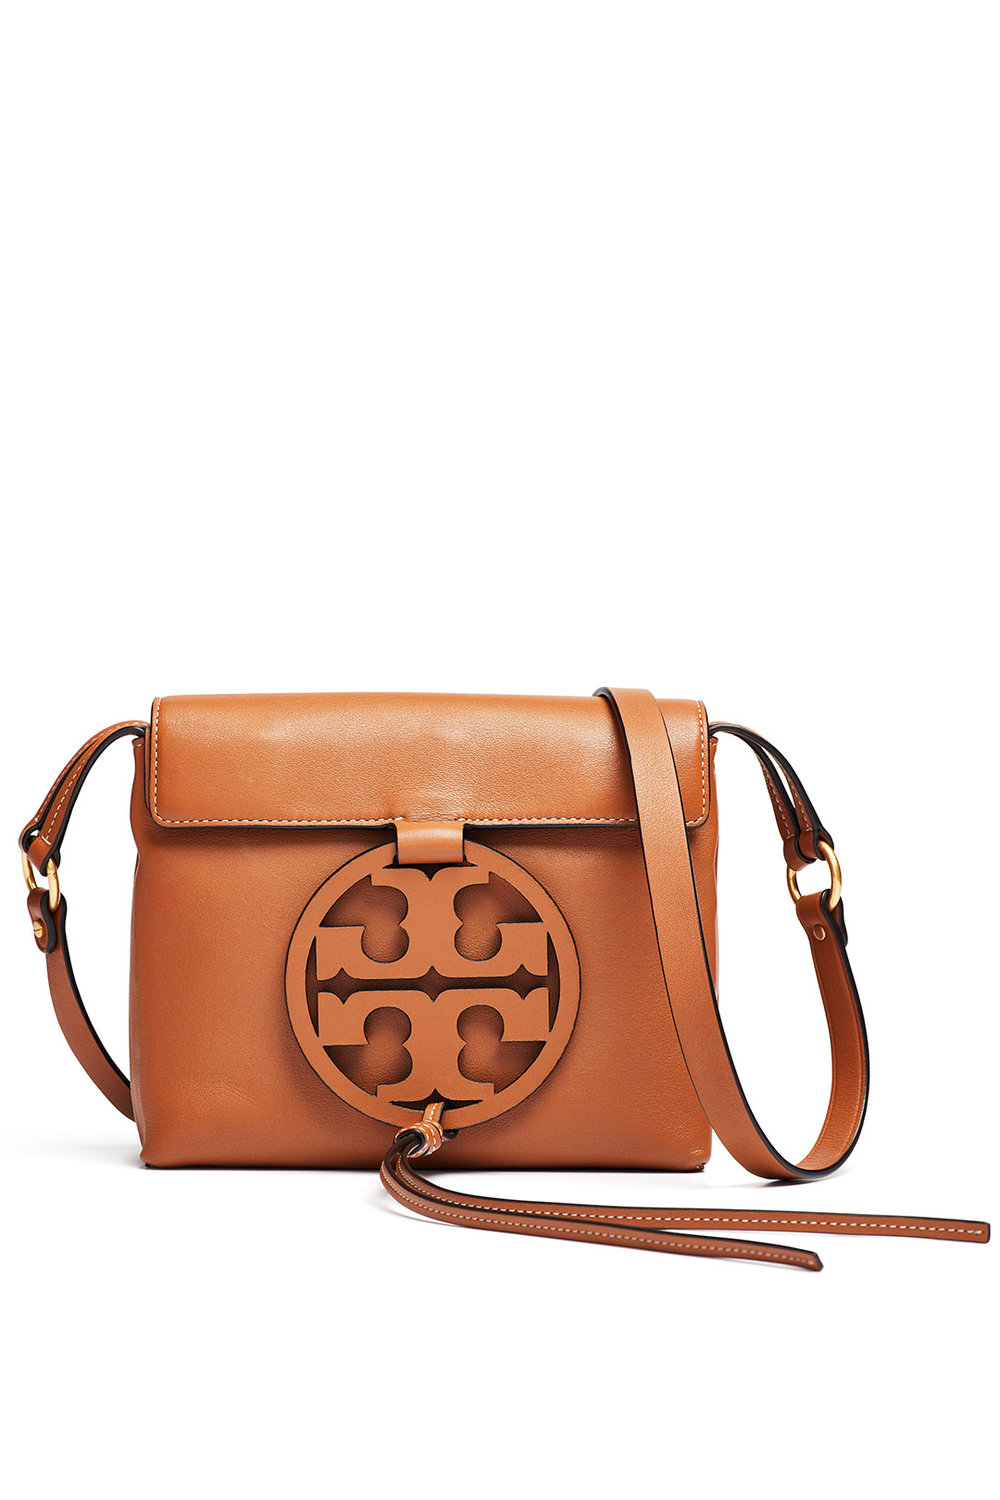 Tory Burch Accessories Cuoio Miller Crossbody.jpg